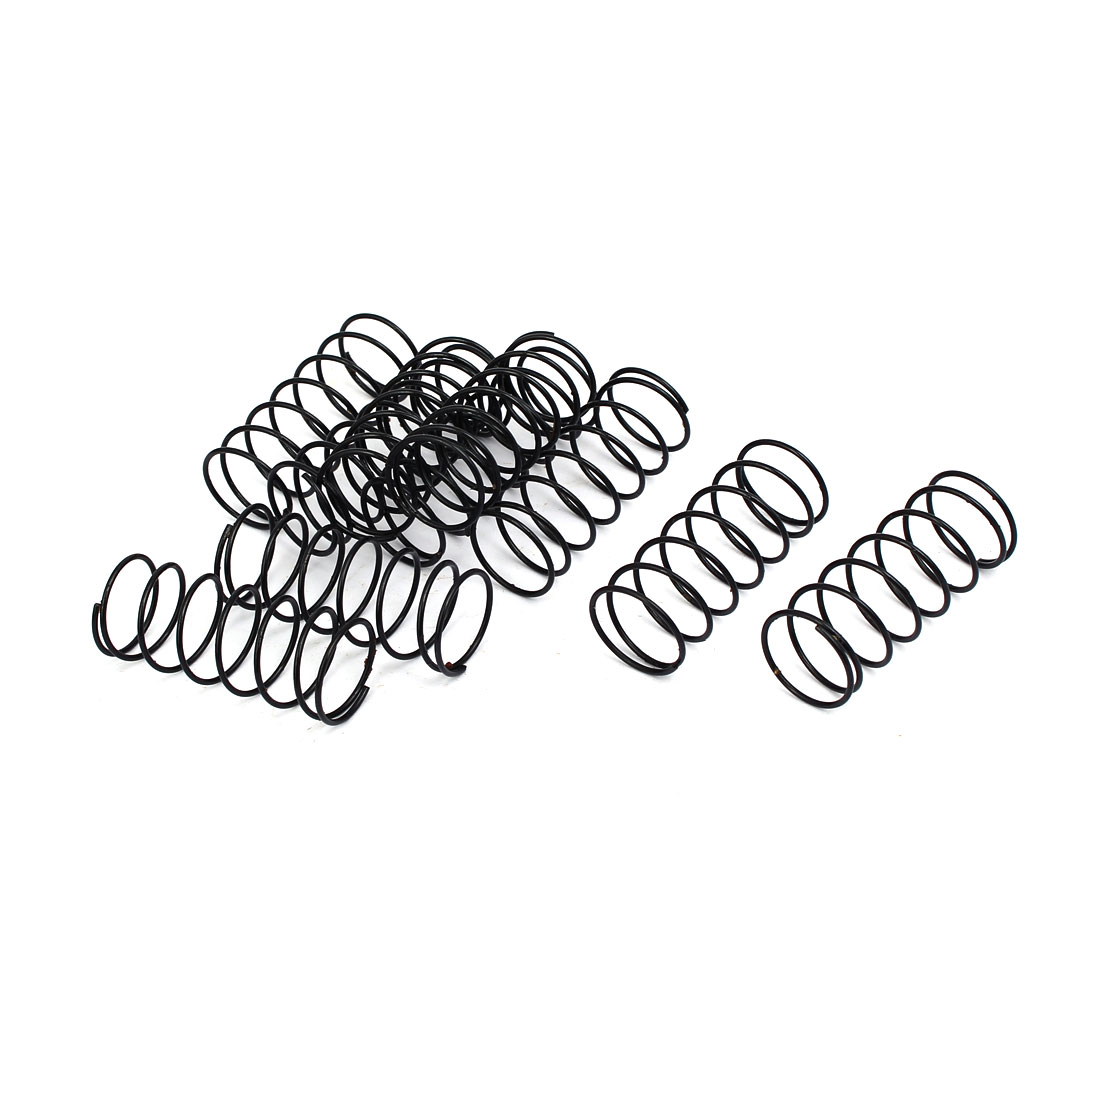 Compression Springs 1 2mm Wire Dia 20mm Outer Diameter 50mm Long Compression Springs Black 10pcs